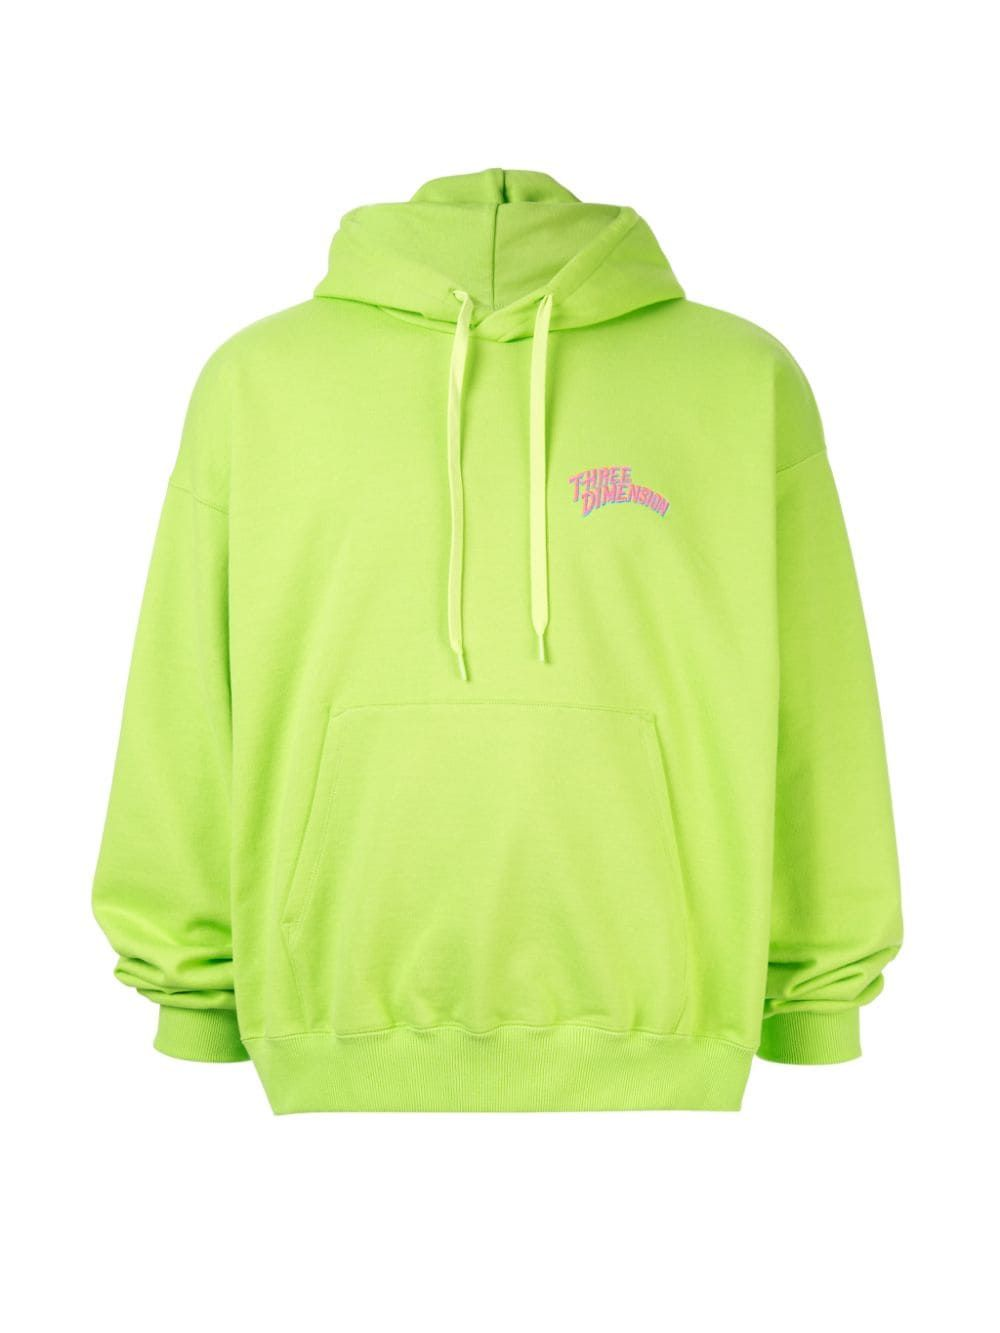 Doublet Embroidered Hoodie Doublet Cloth Embroidered Hoodie Hoodies Doublet [ 1333 x 1000 Pixel ]